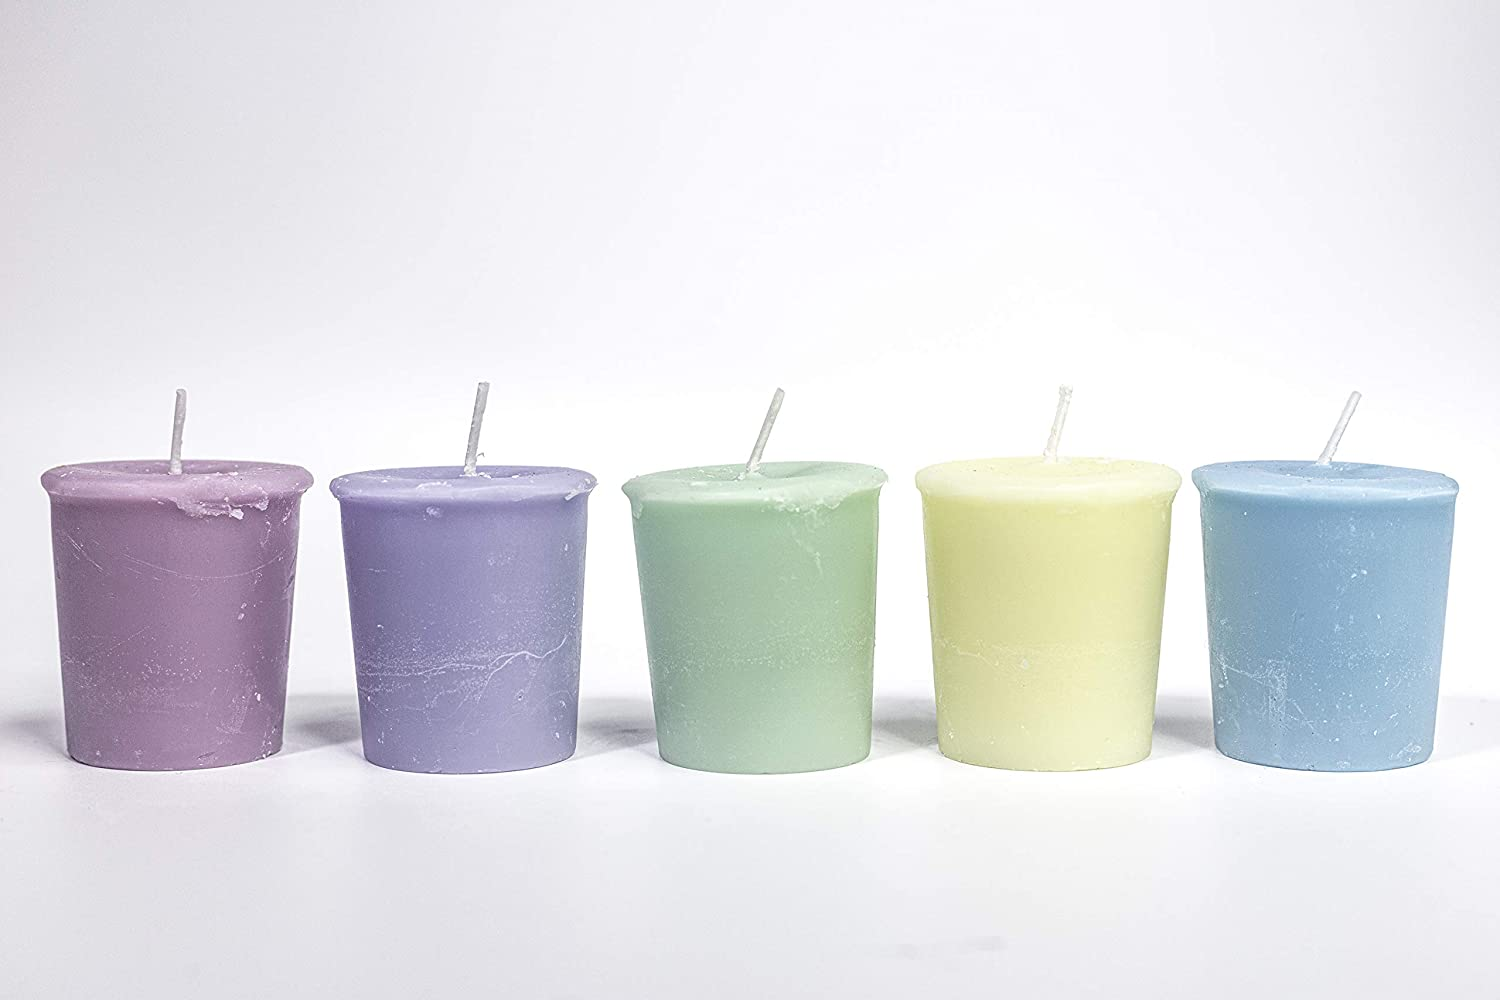 Candle Delights 5 Handmade Scented votives Set Beautiful by E